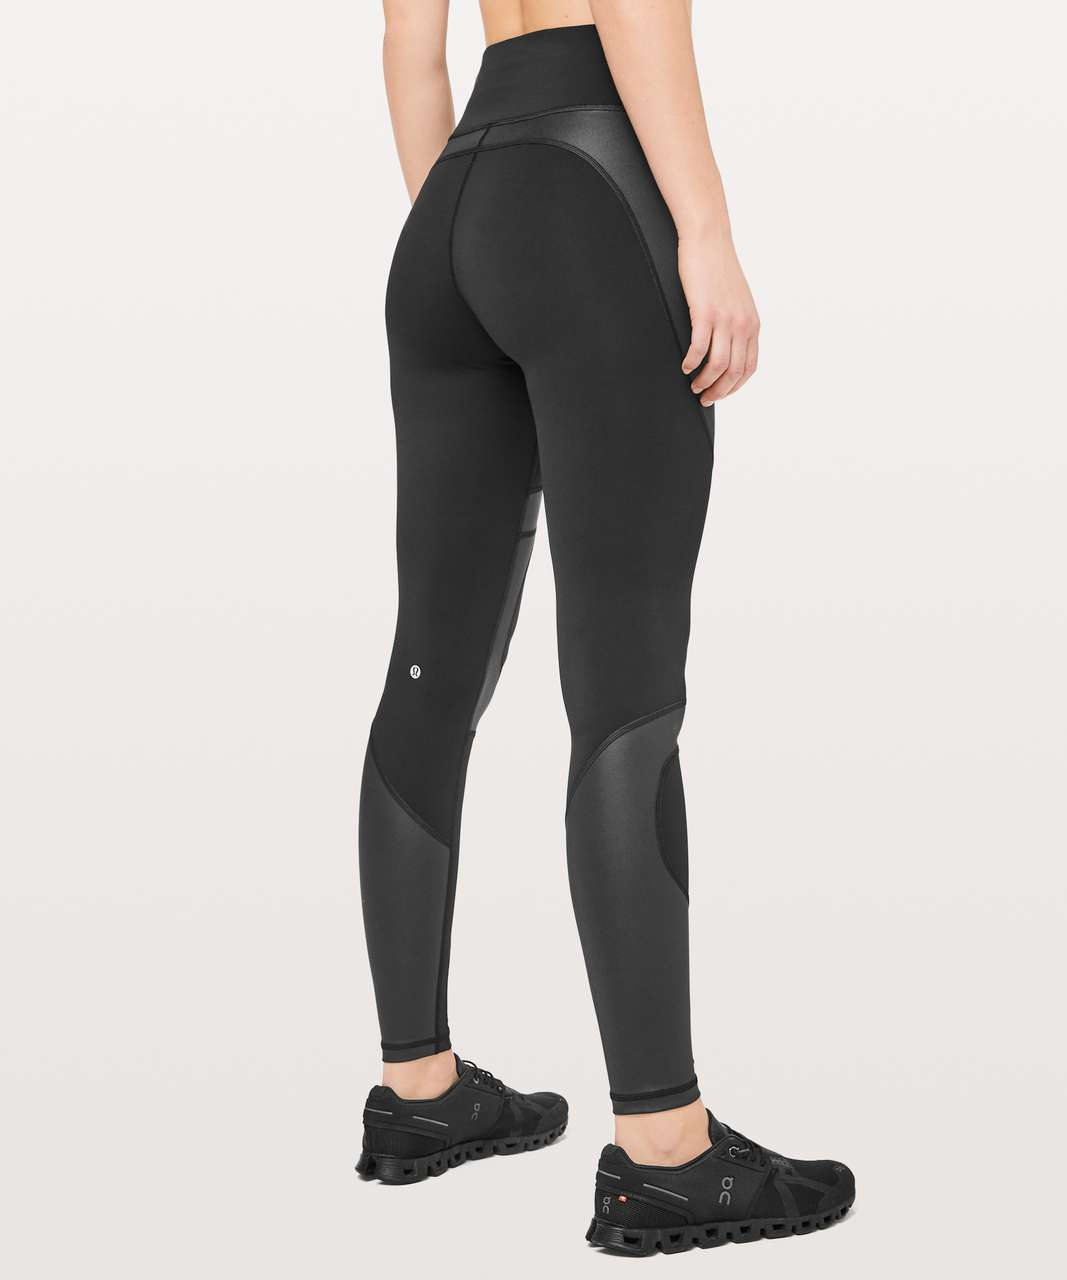 "Lululemon City Core Tight *28"" - Black"